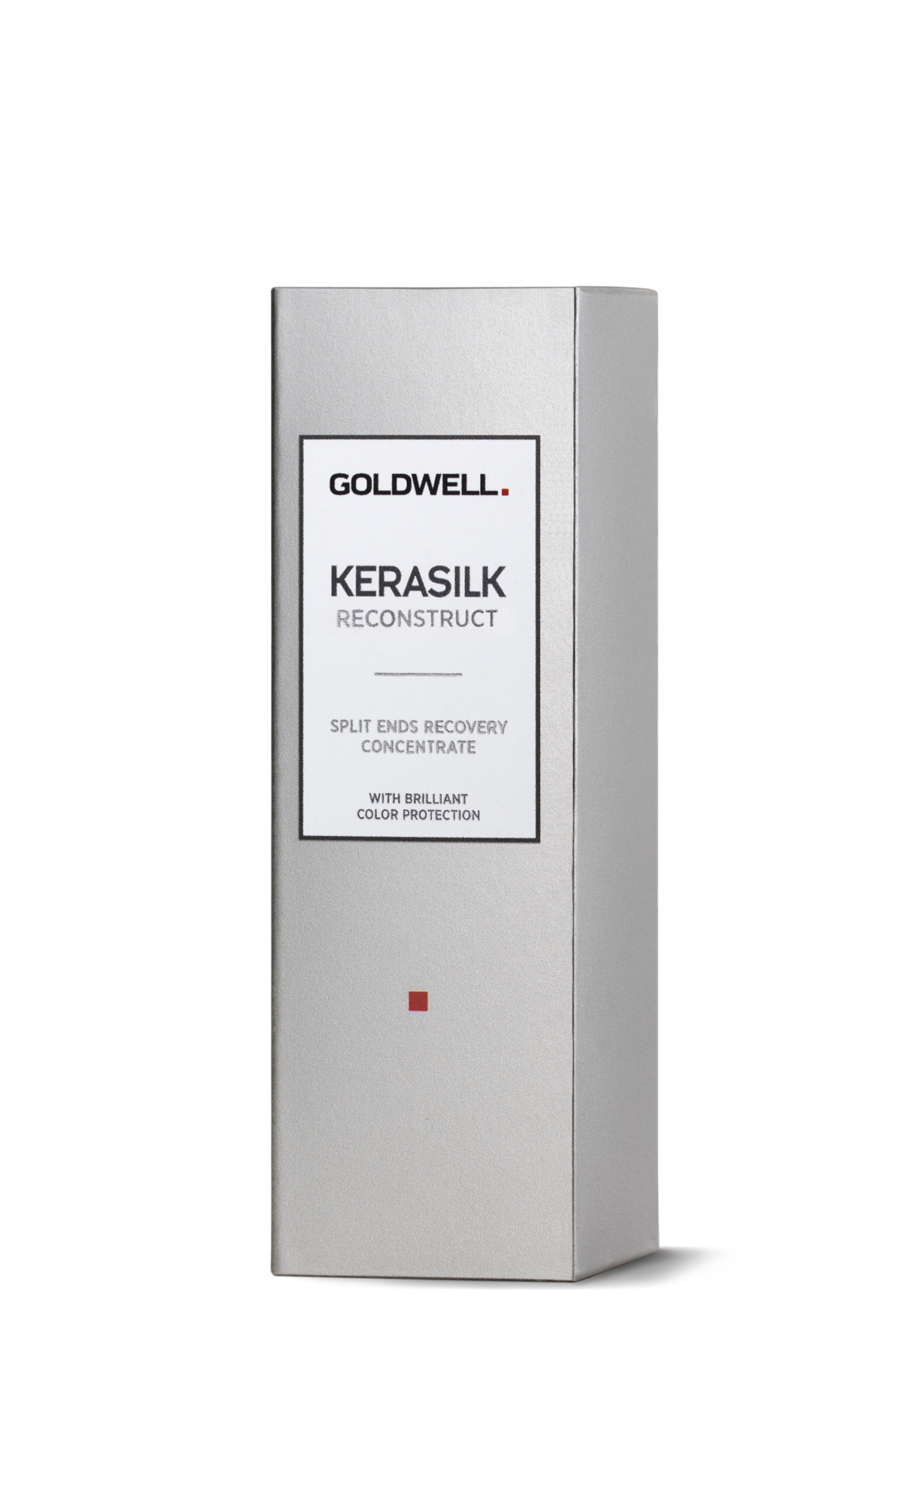 Goldwell Kerasilk Reconstruct Split Ends Recovery Concentrate 50 ml